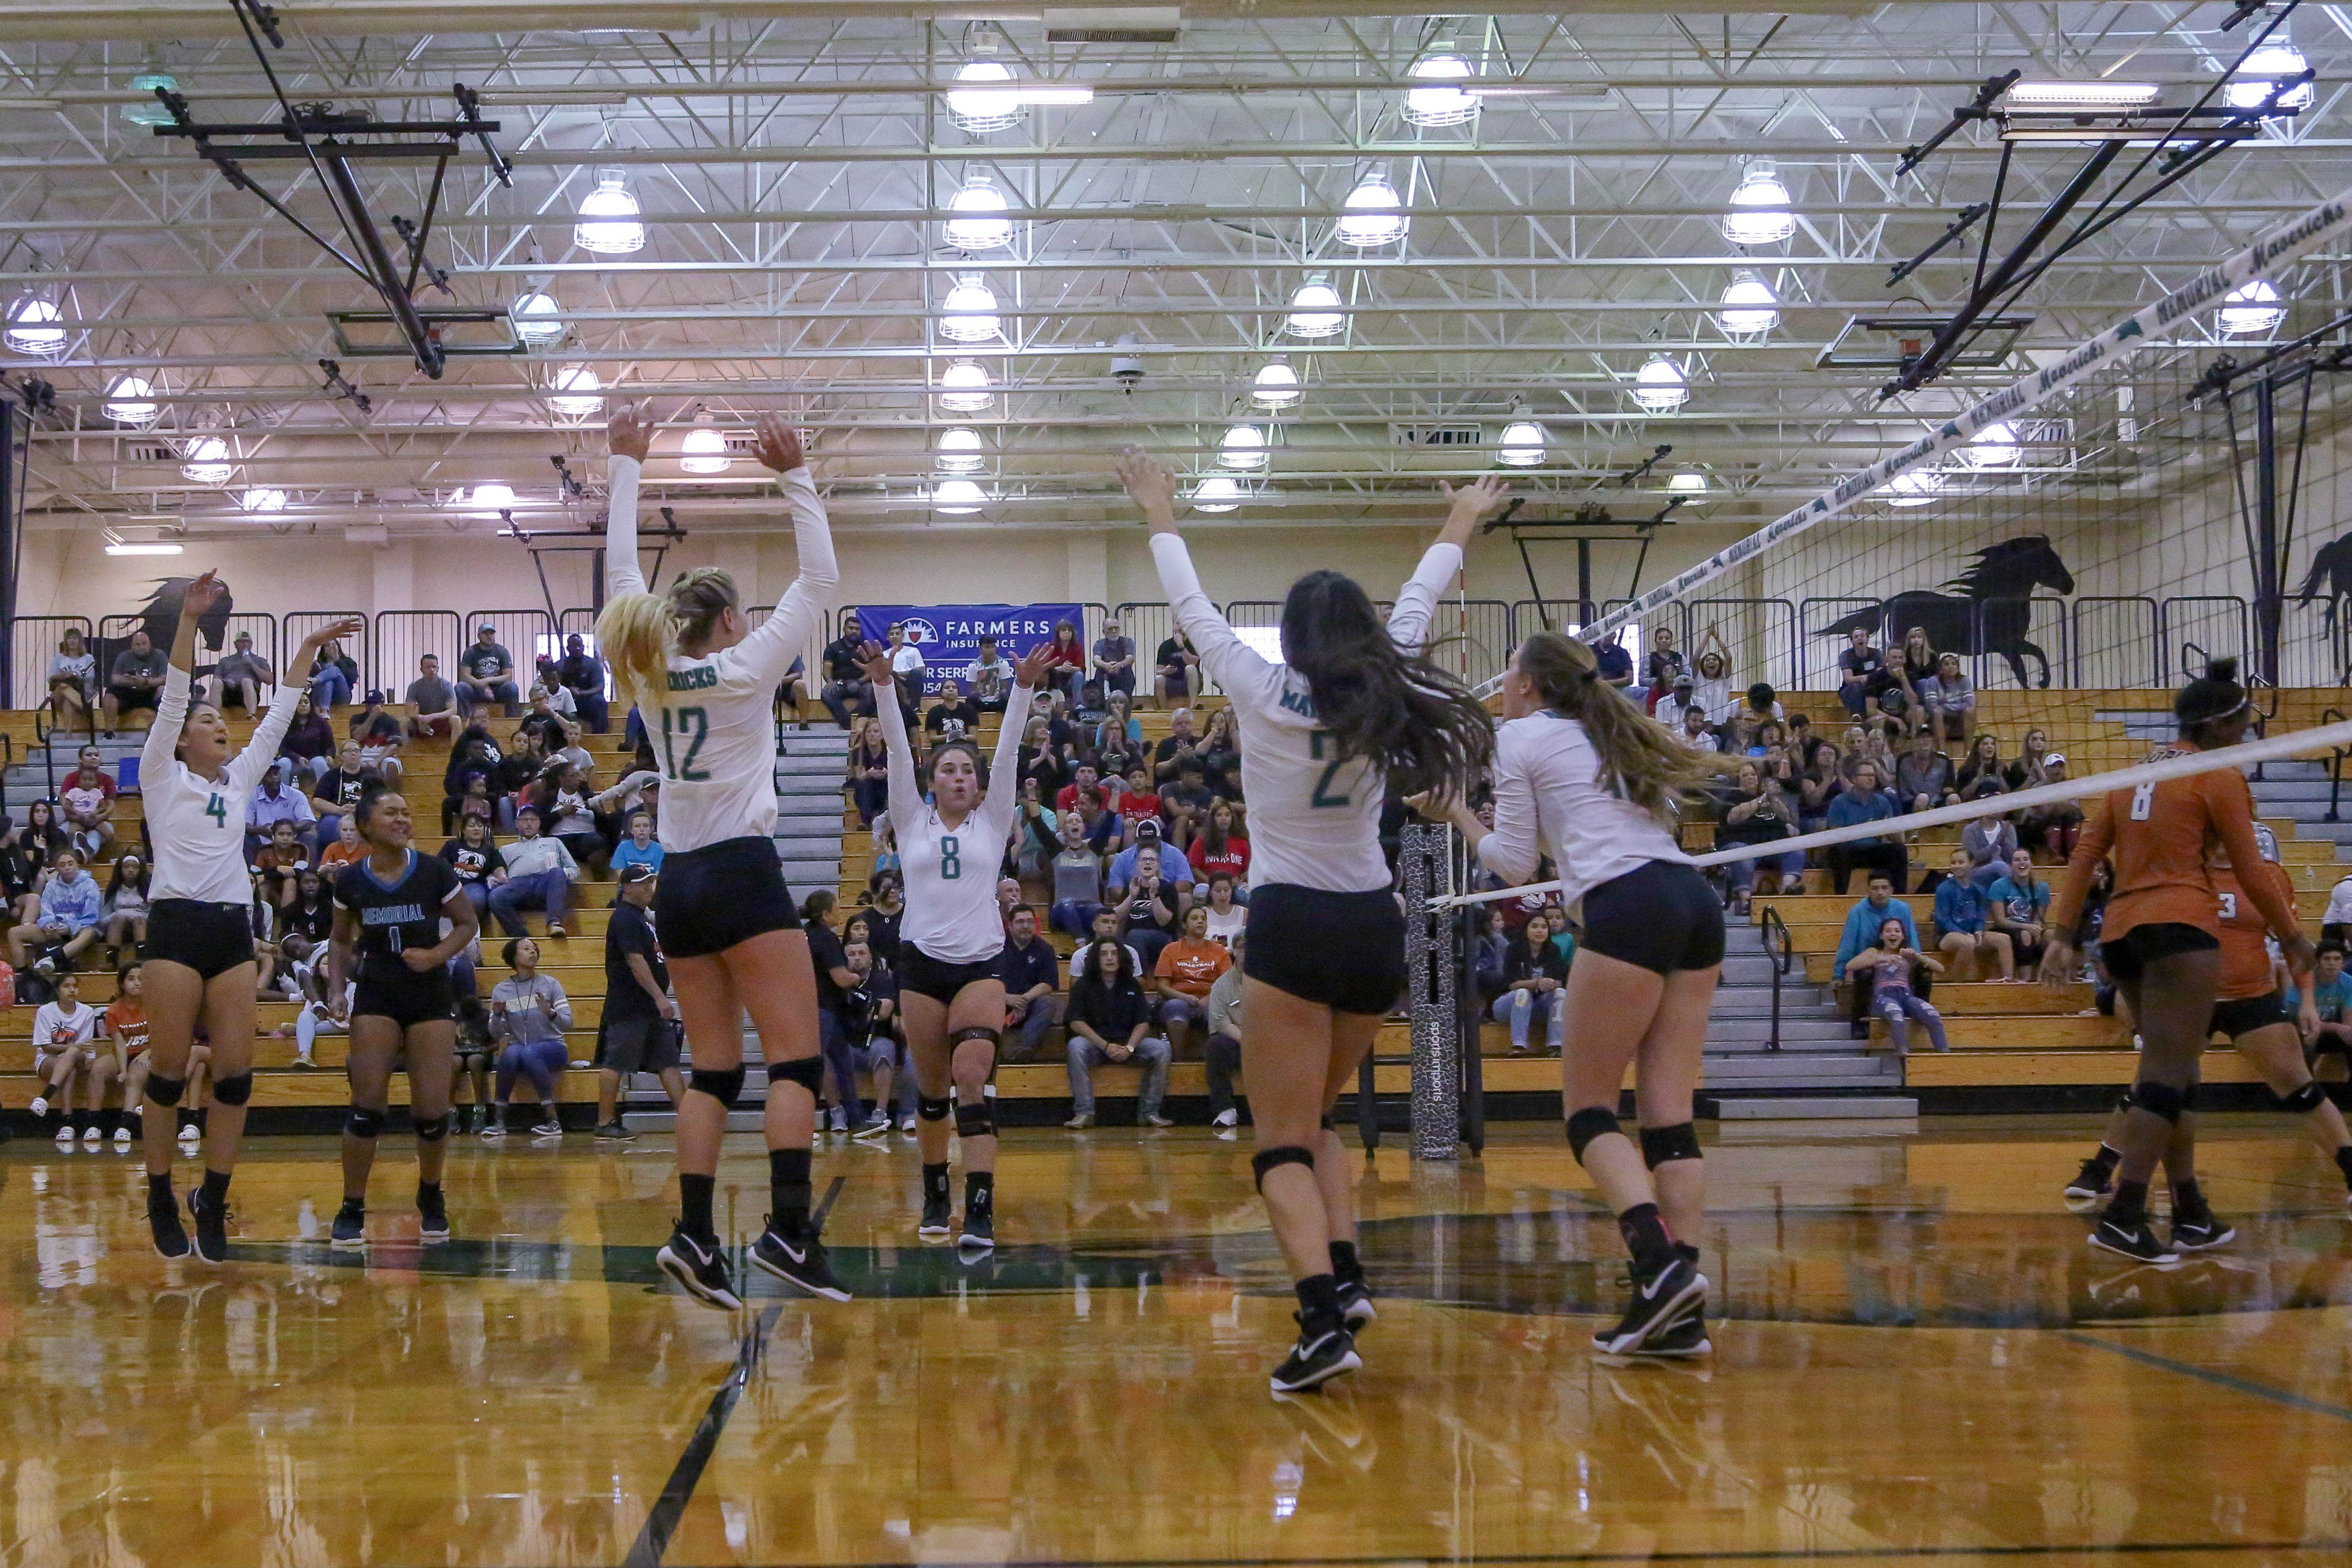 Lady Mavs Lock Down 3rd Place After 1st Round of District Play